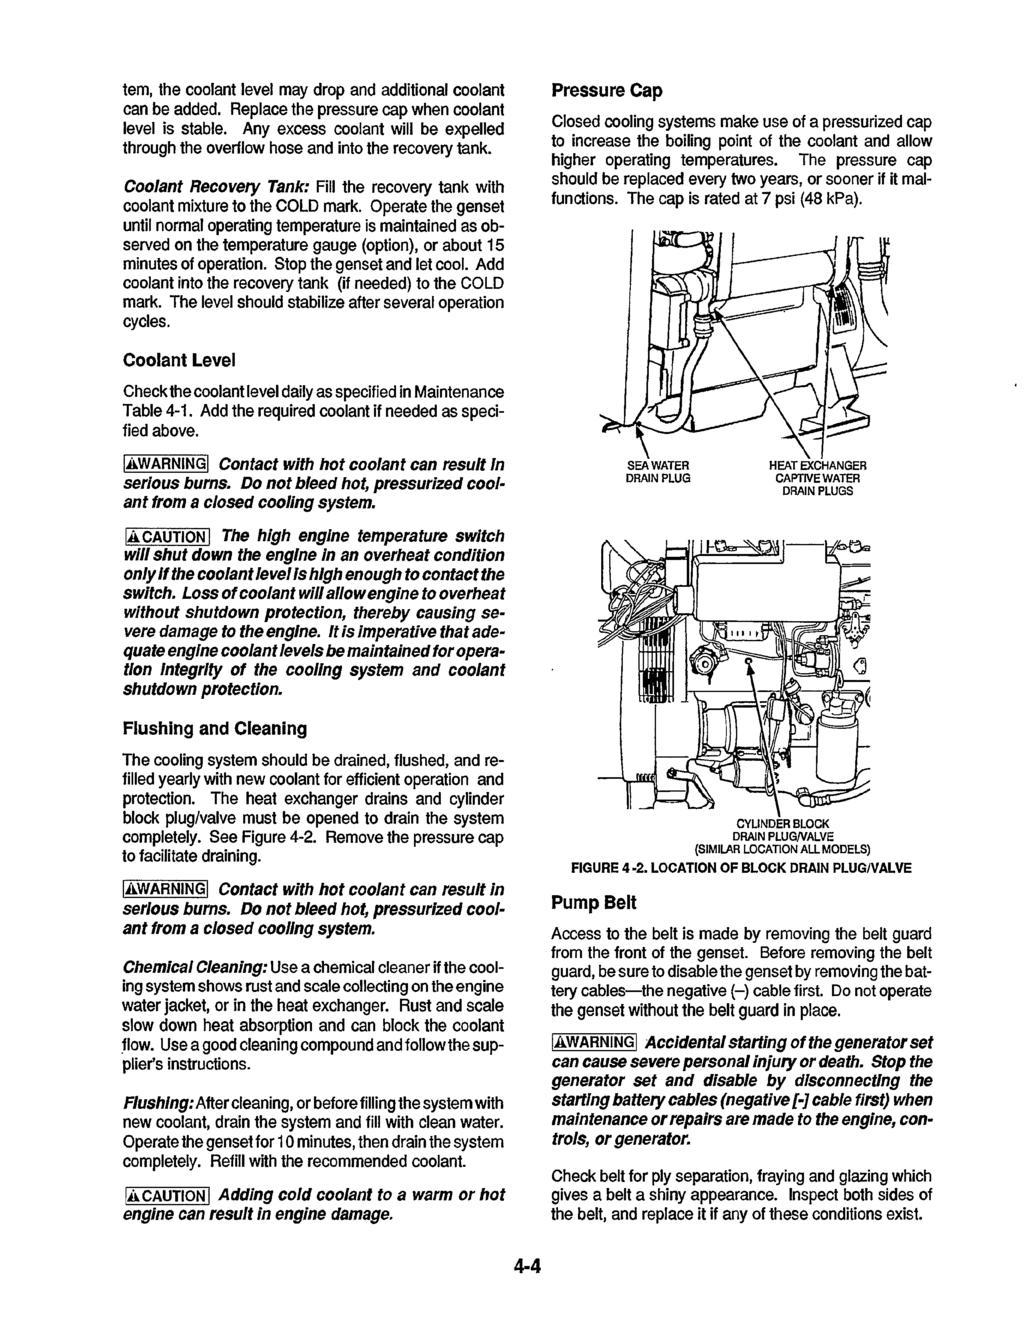 tem, the coolant level may drop and additional coolant can be added.  Replace the